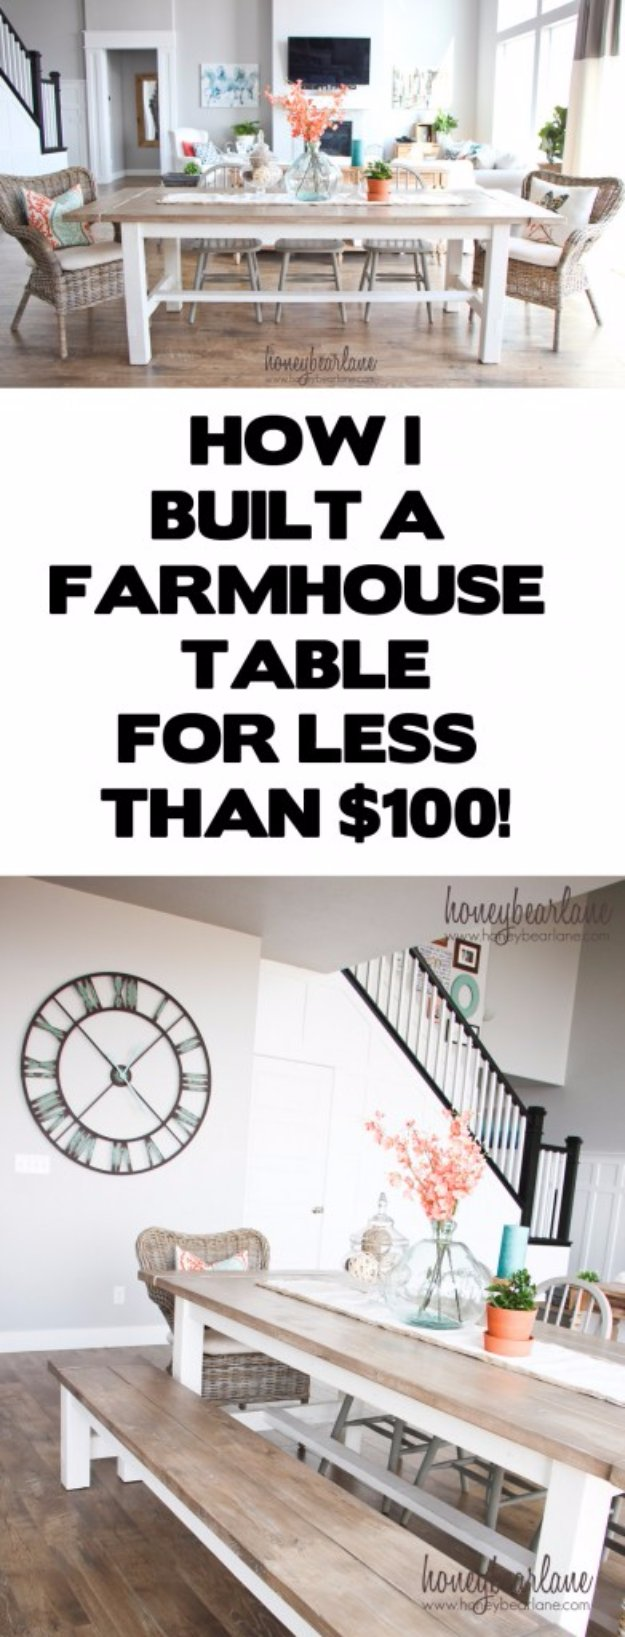 DIY Dining Room Decor Ideas - DIY Farmhouse Table and Bench - Cool DIY Projects for Table, Chairs, Decorations, Wall Art, Bench Plans, Storage, Buffet, Hutch and Lighting Tutorials